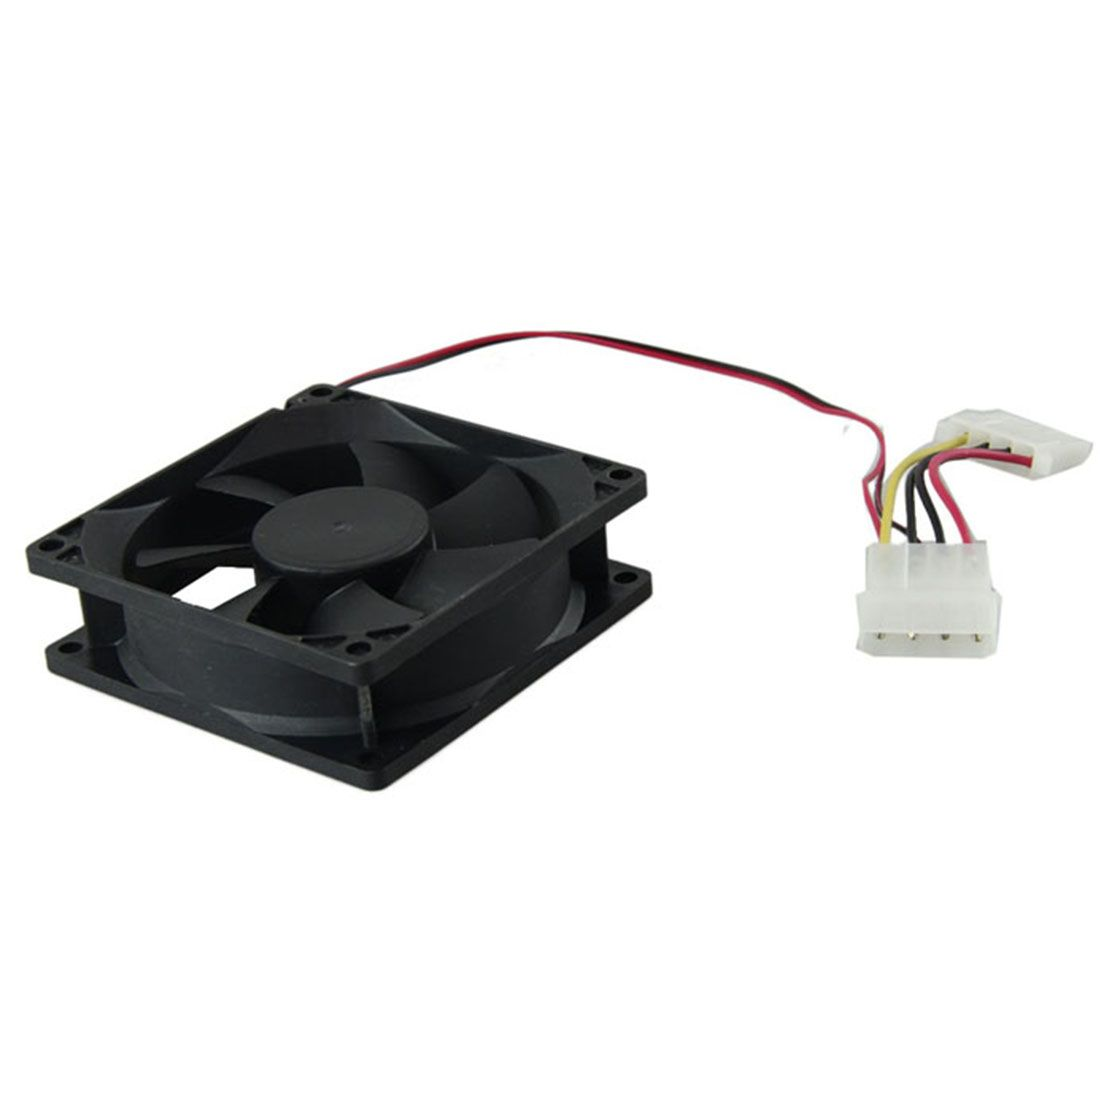 120mm Pc Cpu Cooling Fan 12v 4 Pin Computer Case Cooler Connector For Computer 1 Pc Computer Radiator Fan Heat Sink Af Computer Case Radiator Fan Computer Fan